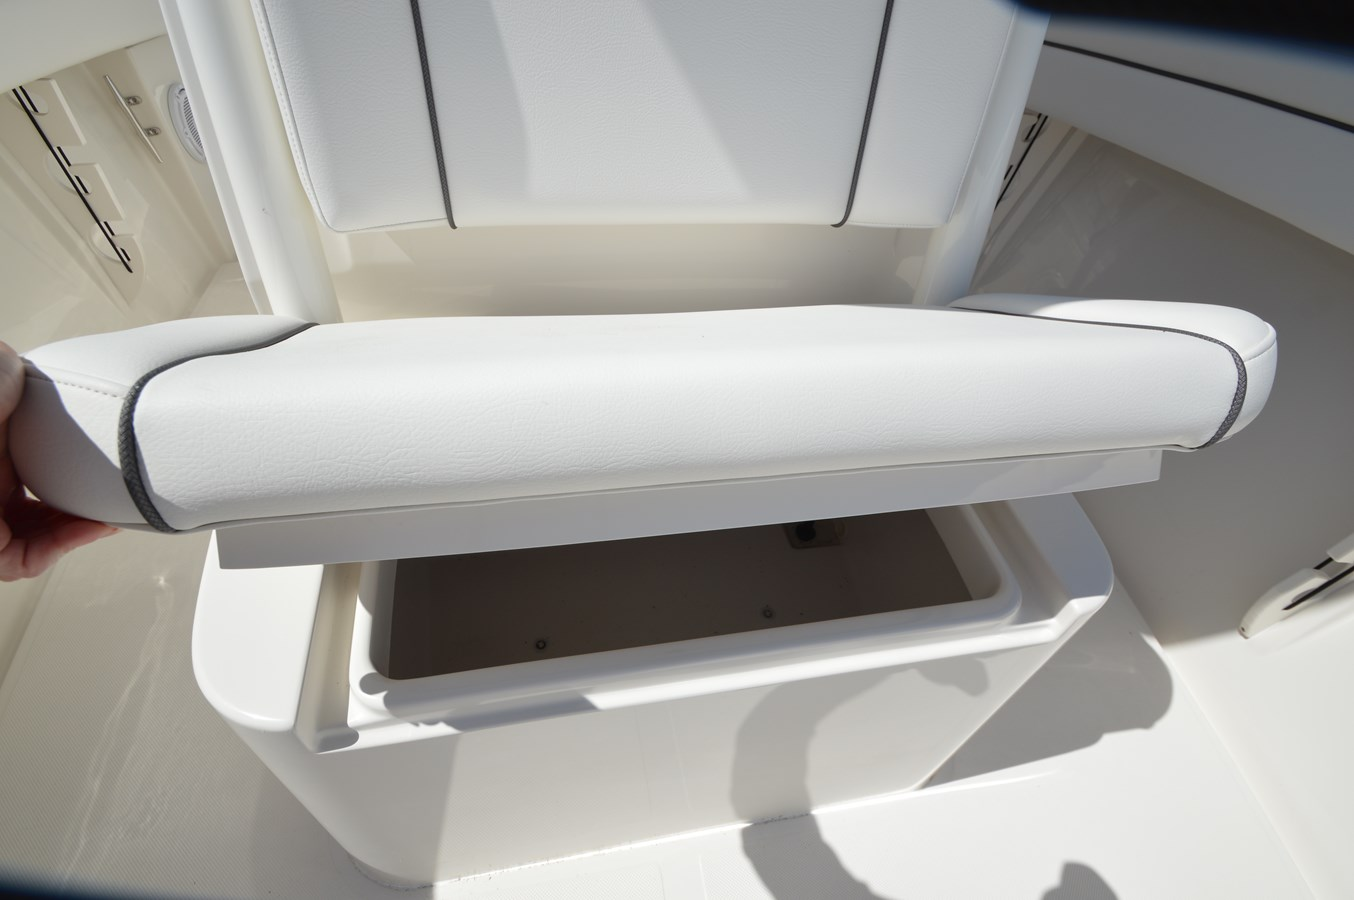 26 Jupiter Cooler Under Seat - 26 JUPITER For Sale